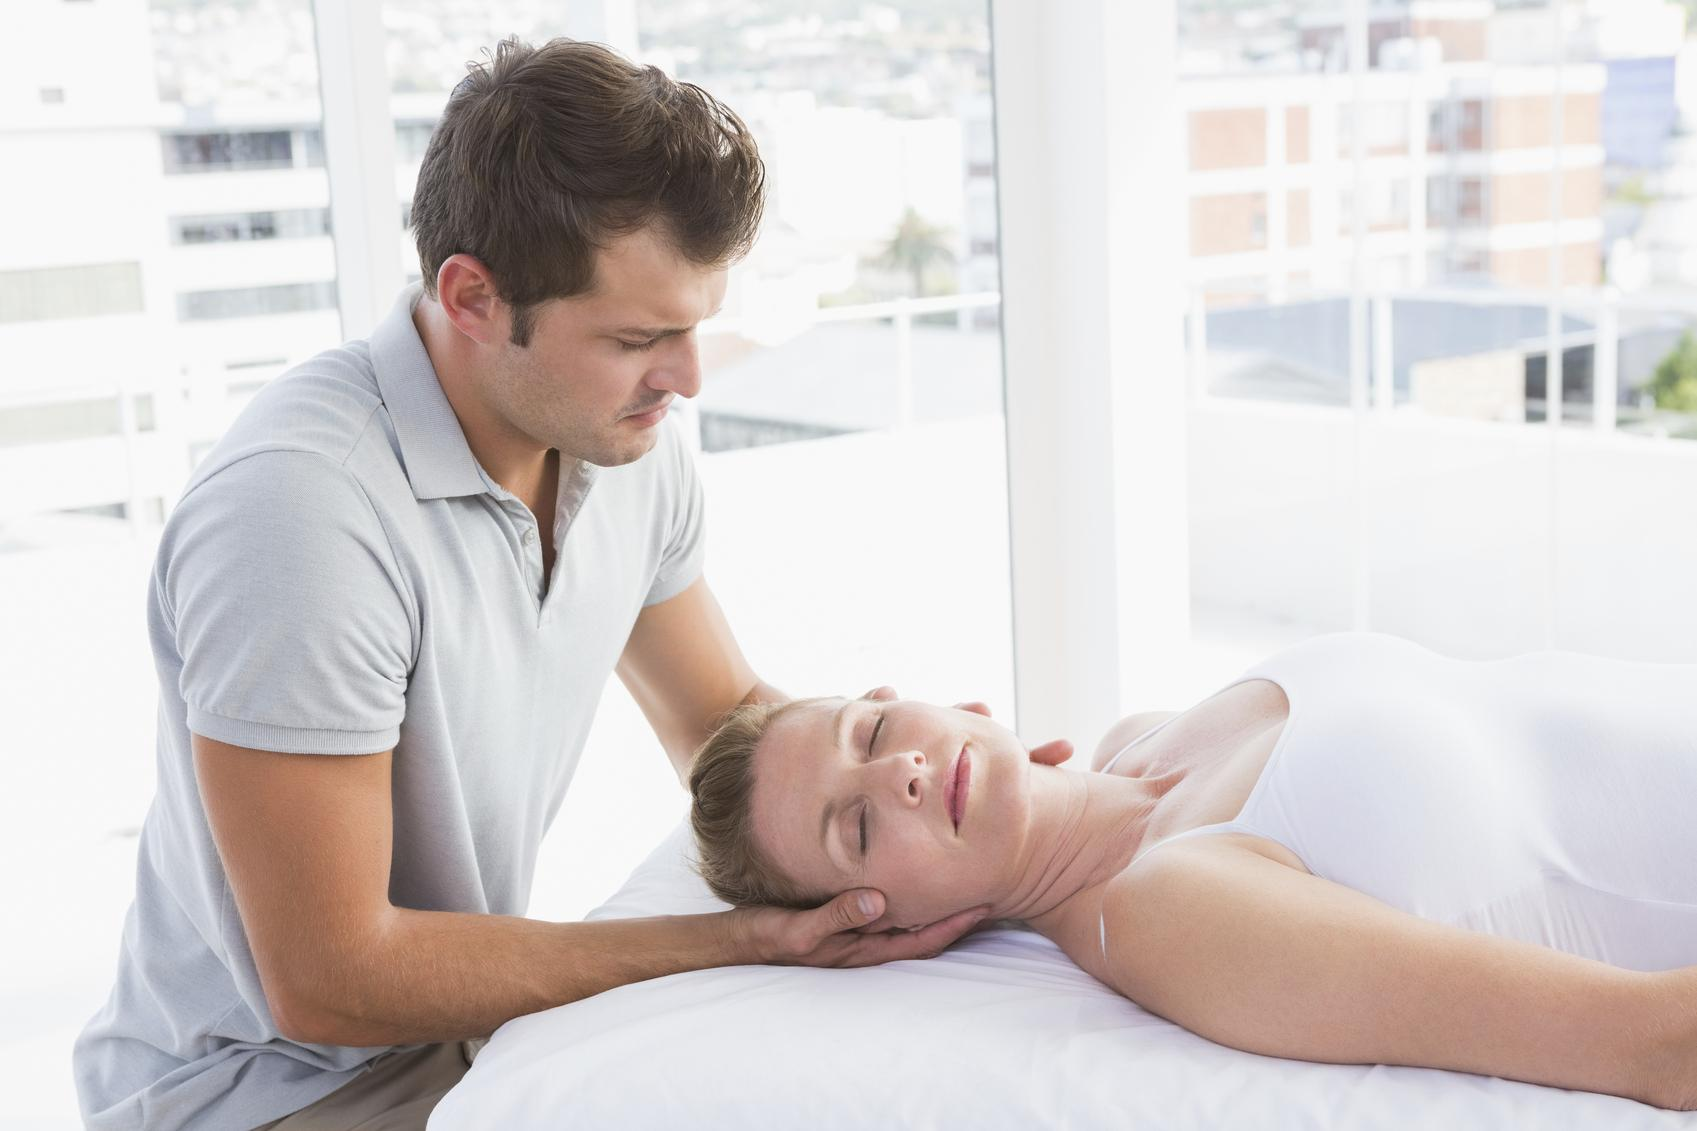 Massage therapist working with a patient - Benefit Strategies Inc